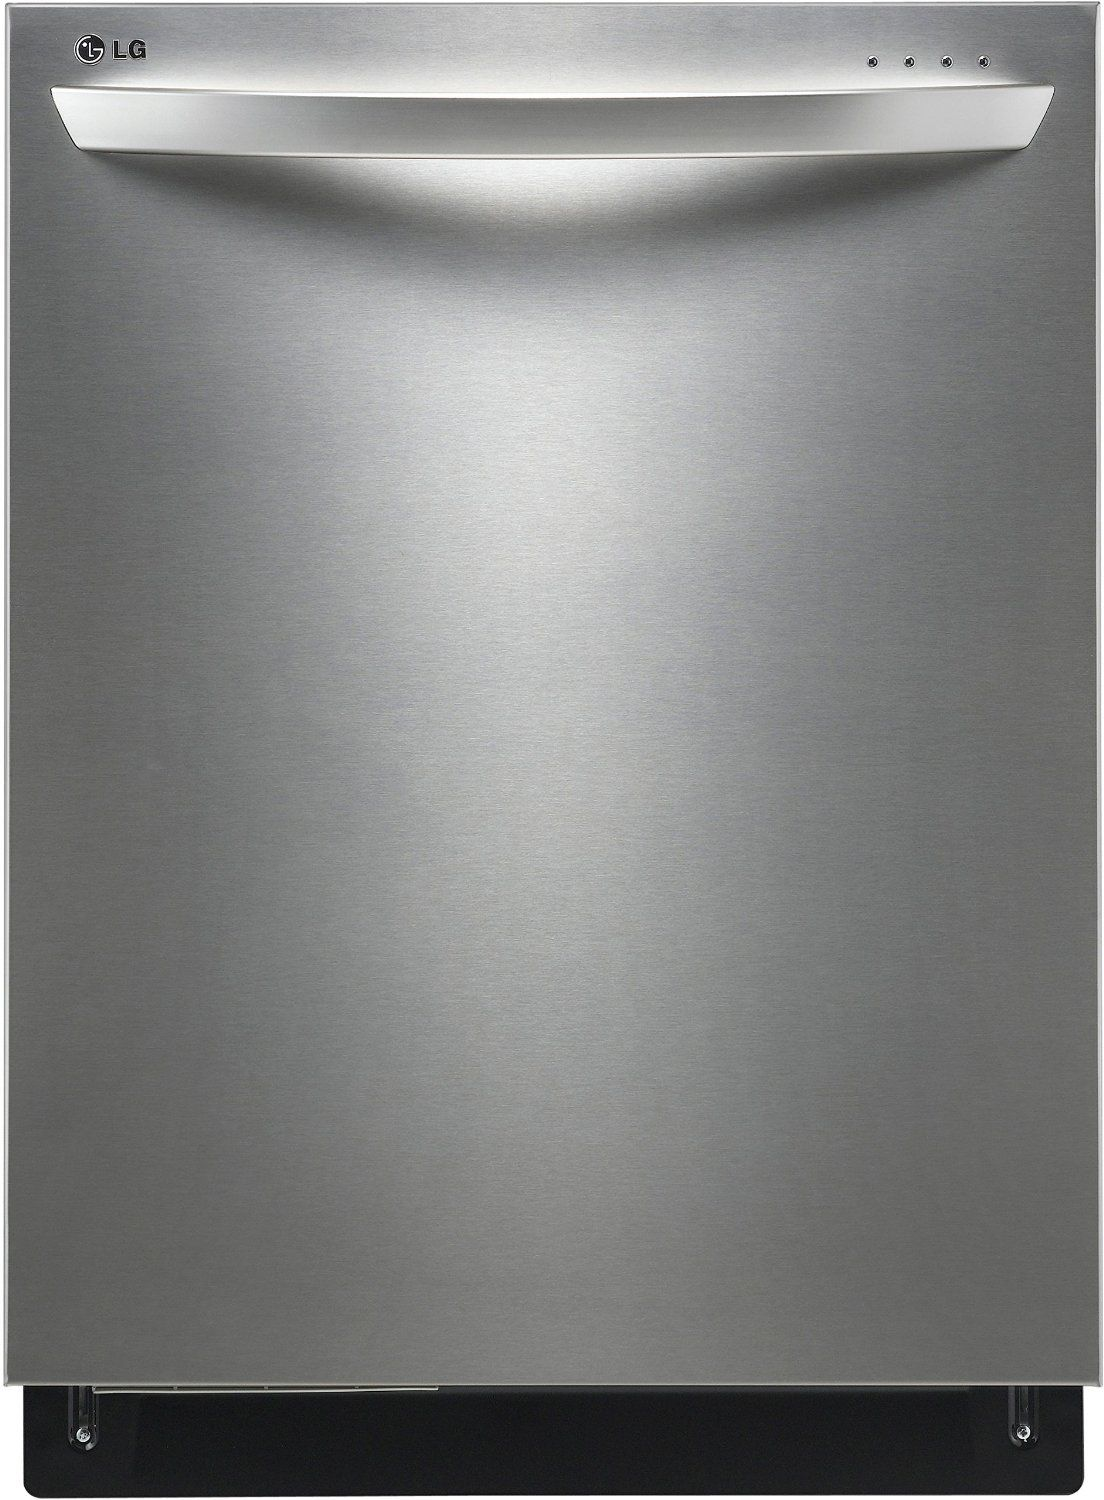 Lg Ldf8874st Fully Integrated Dishwasher Stainless Steel Find Out More About The Great Product At The Im Built In Dishwasher Integrated Dishwasher Steel Tub